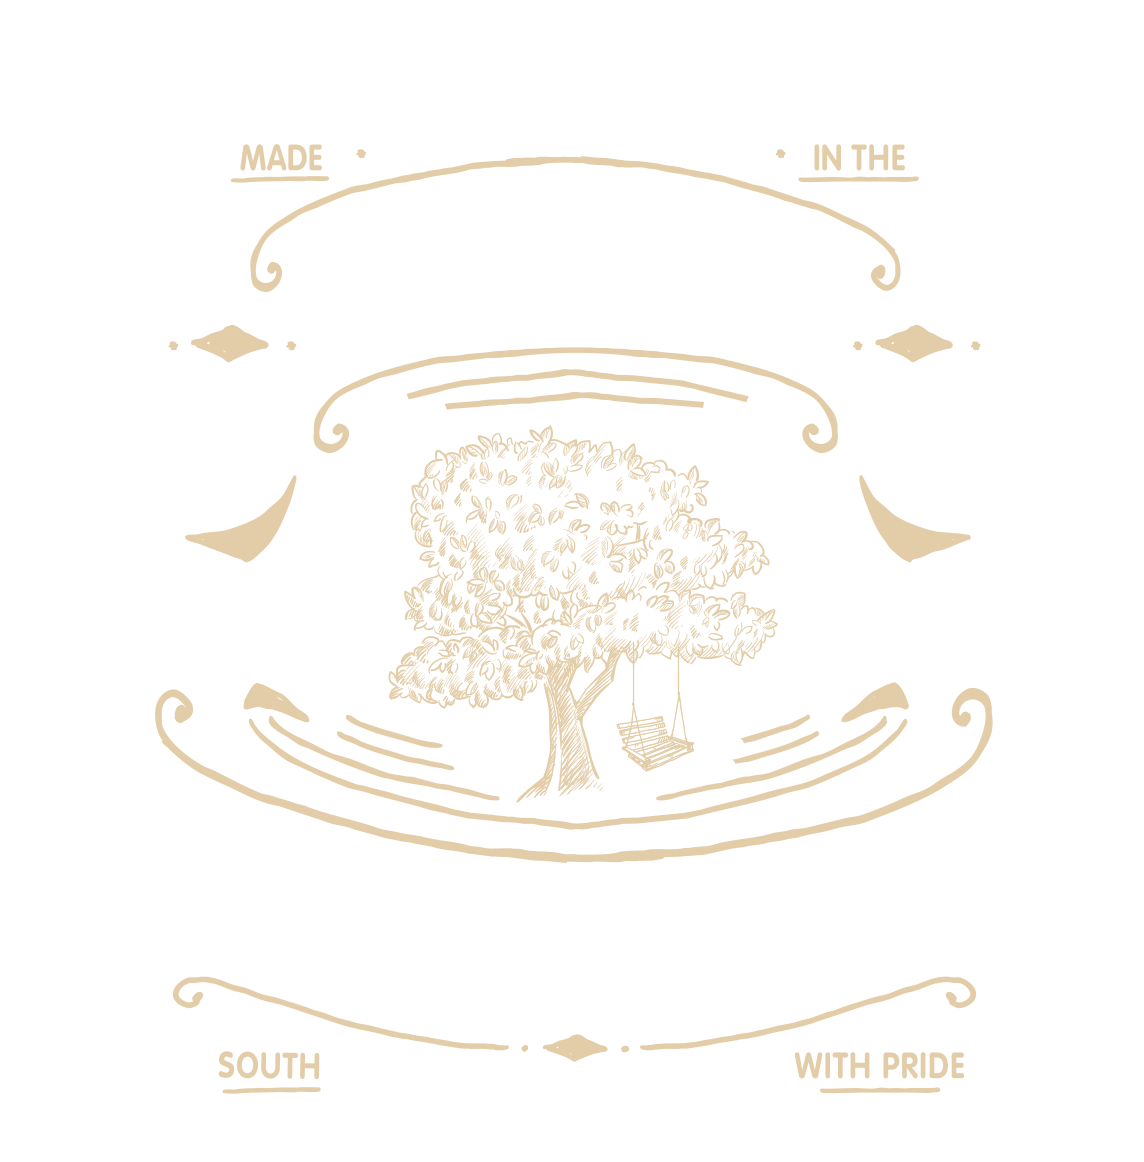 PURE SOUTHERN